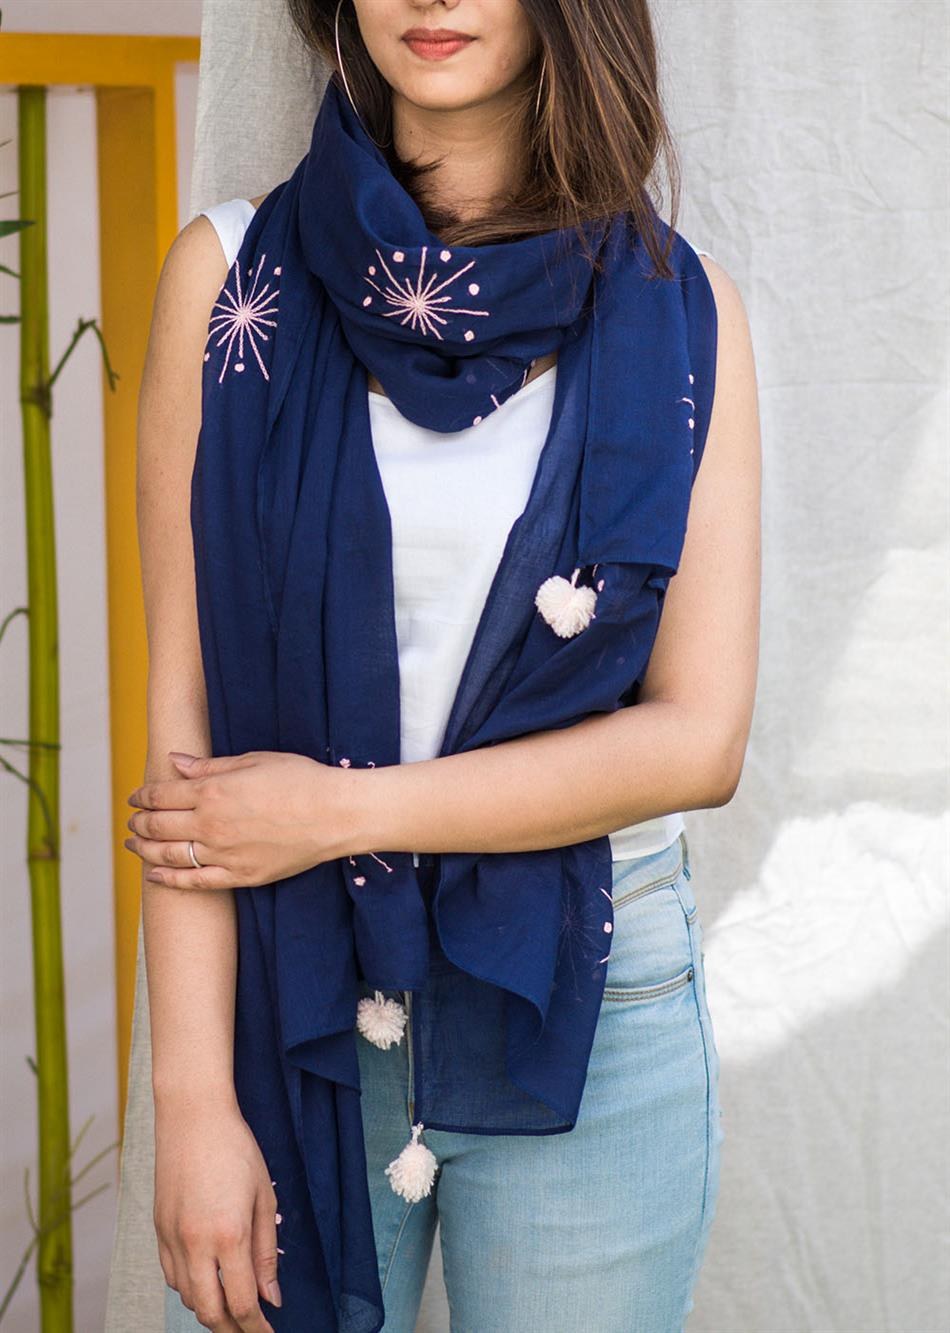 Balletic mood - Navy blue (Hand embroidered scarf) By Jovi Fashion